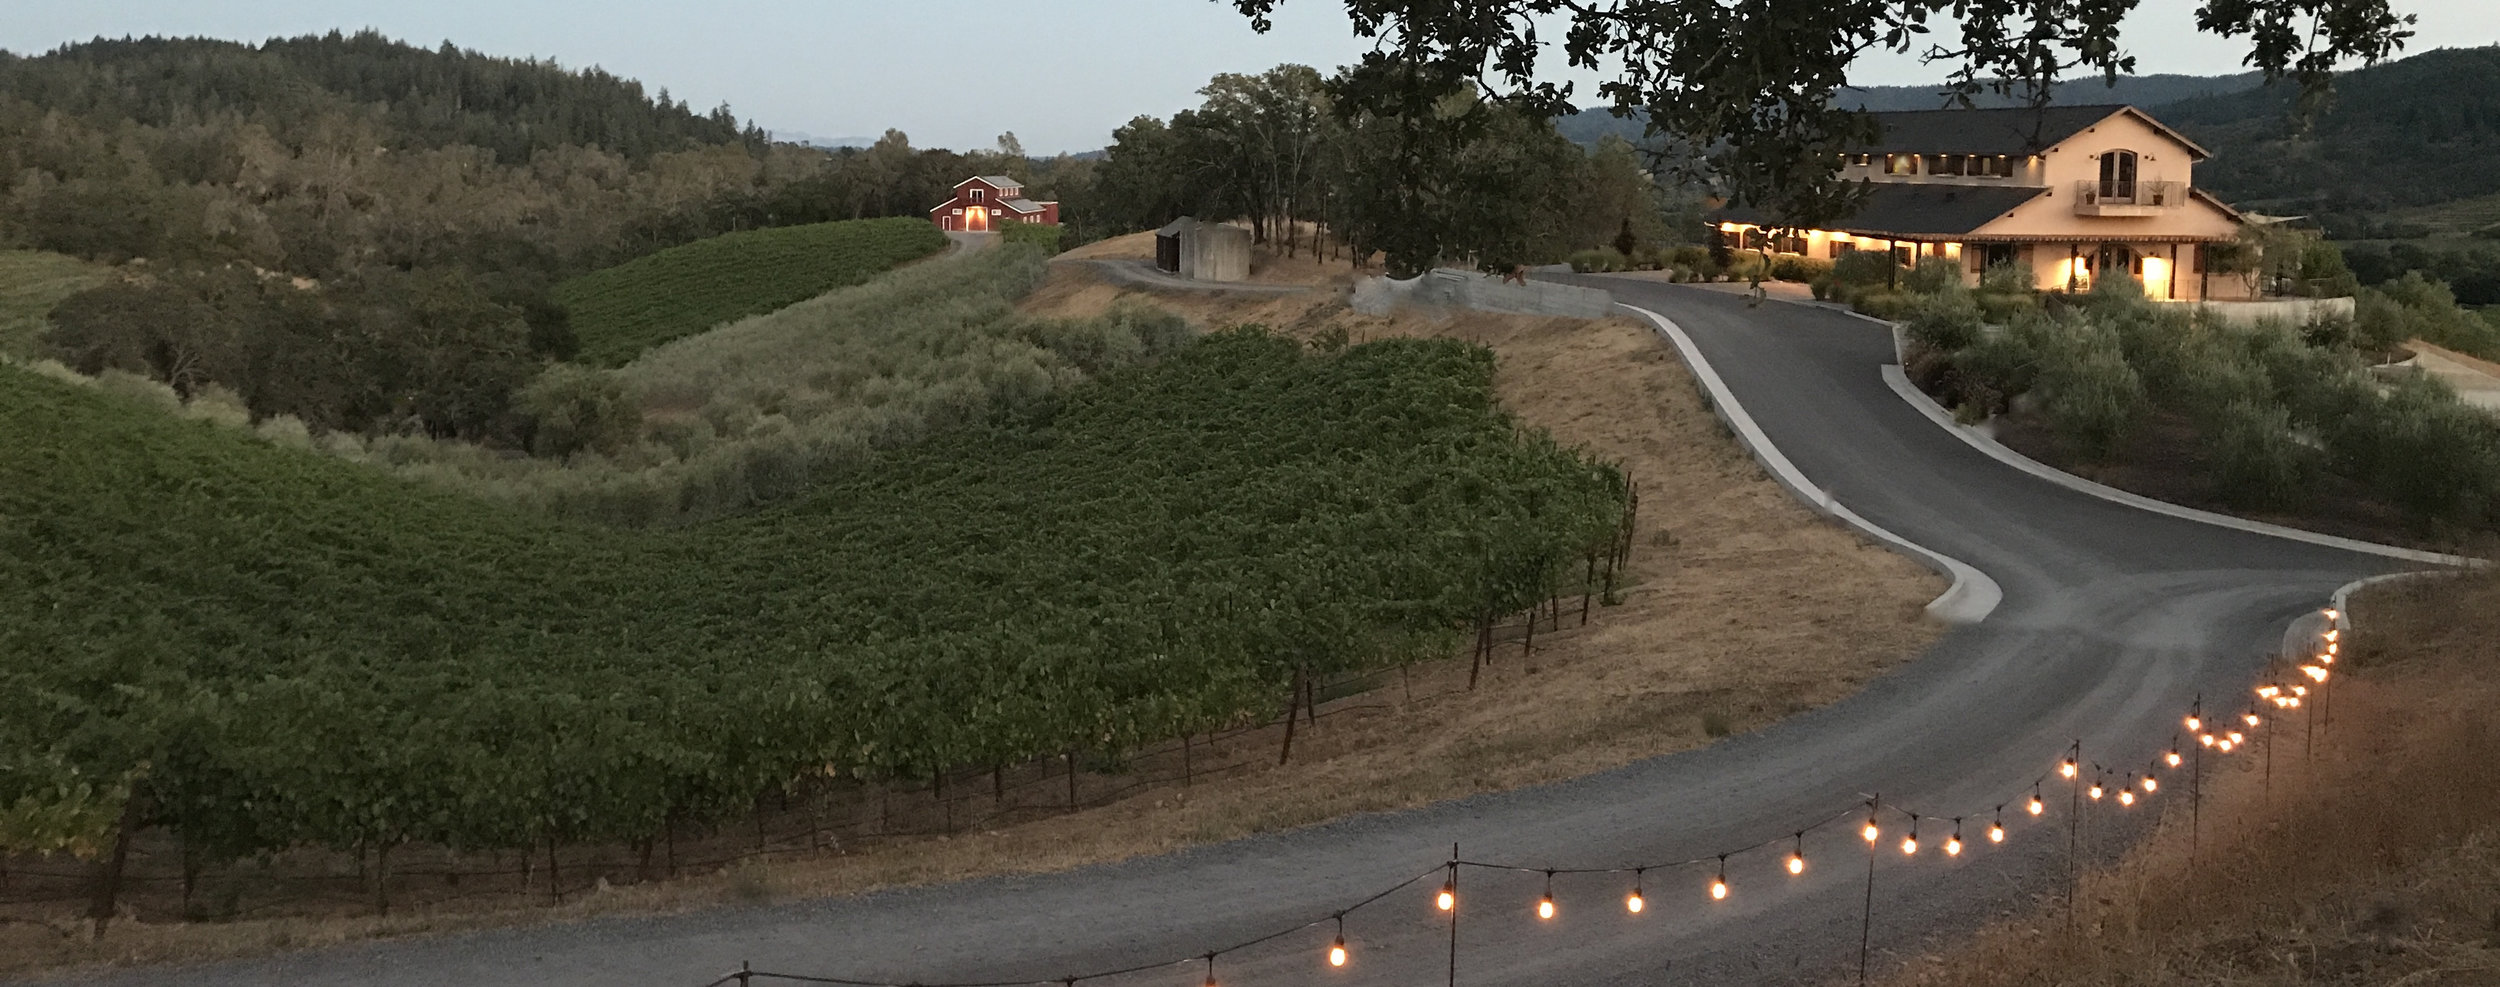 trattore farms winery